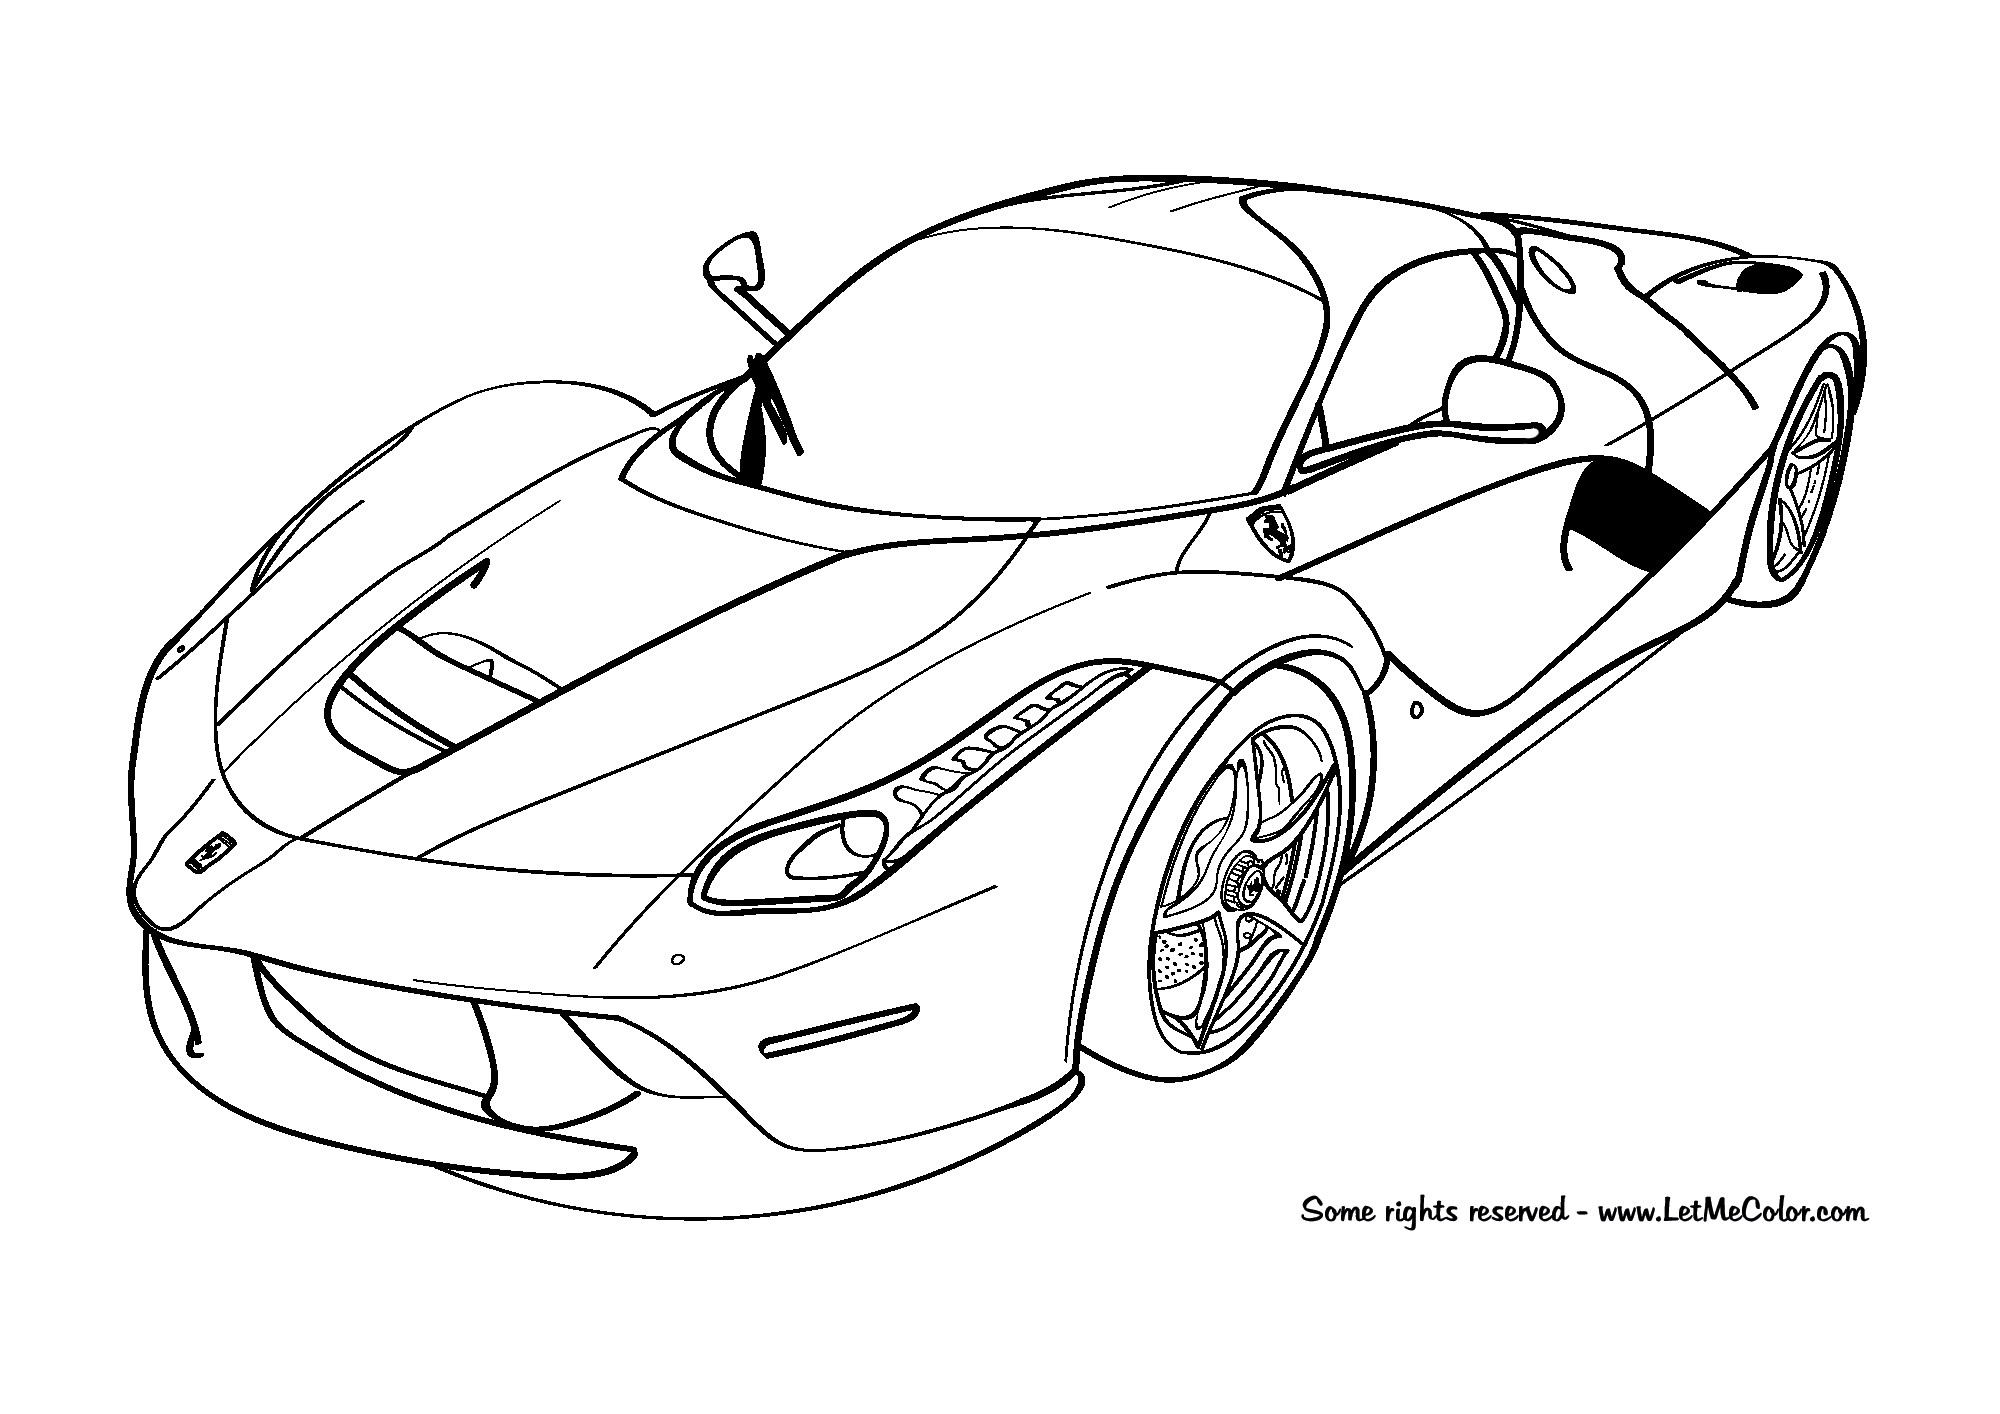 2000x1414 Ferrari Car Coloring Pages New Drawn Ferrari Mustang Pencil And